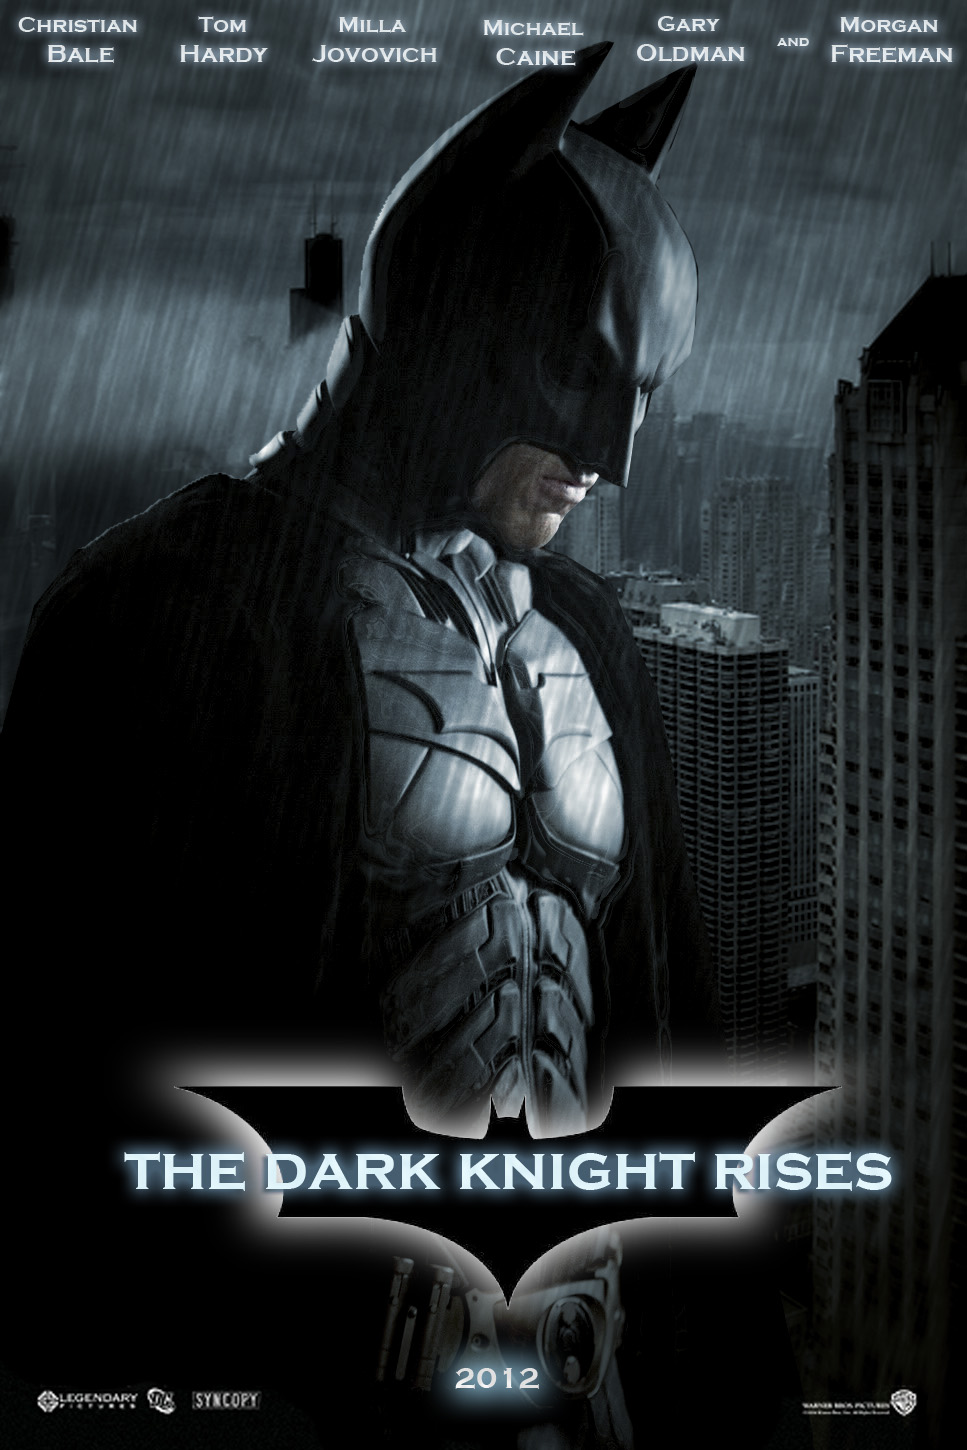 Download The Dark Knight Rises Live Wallpaper Gallery